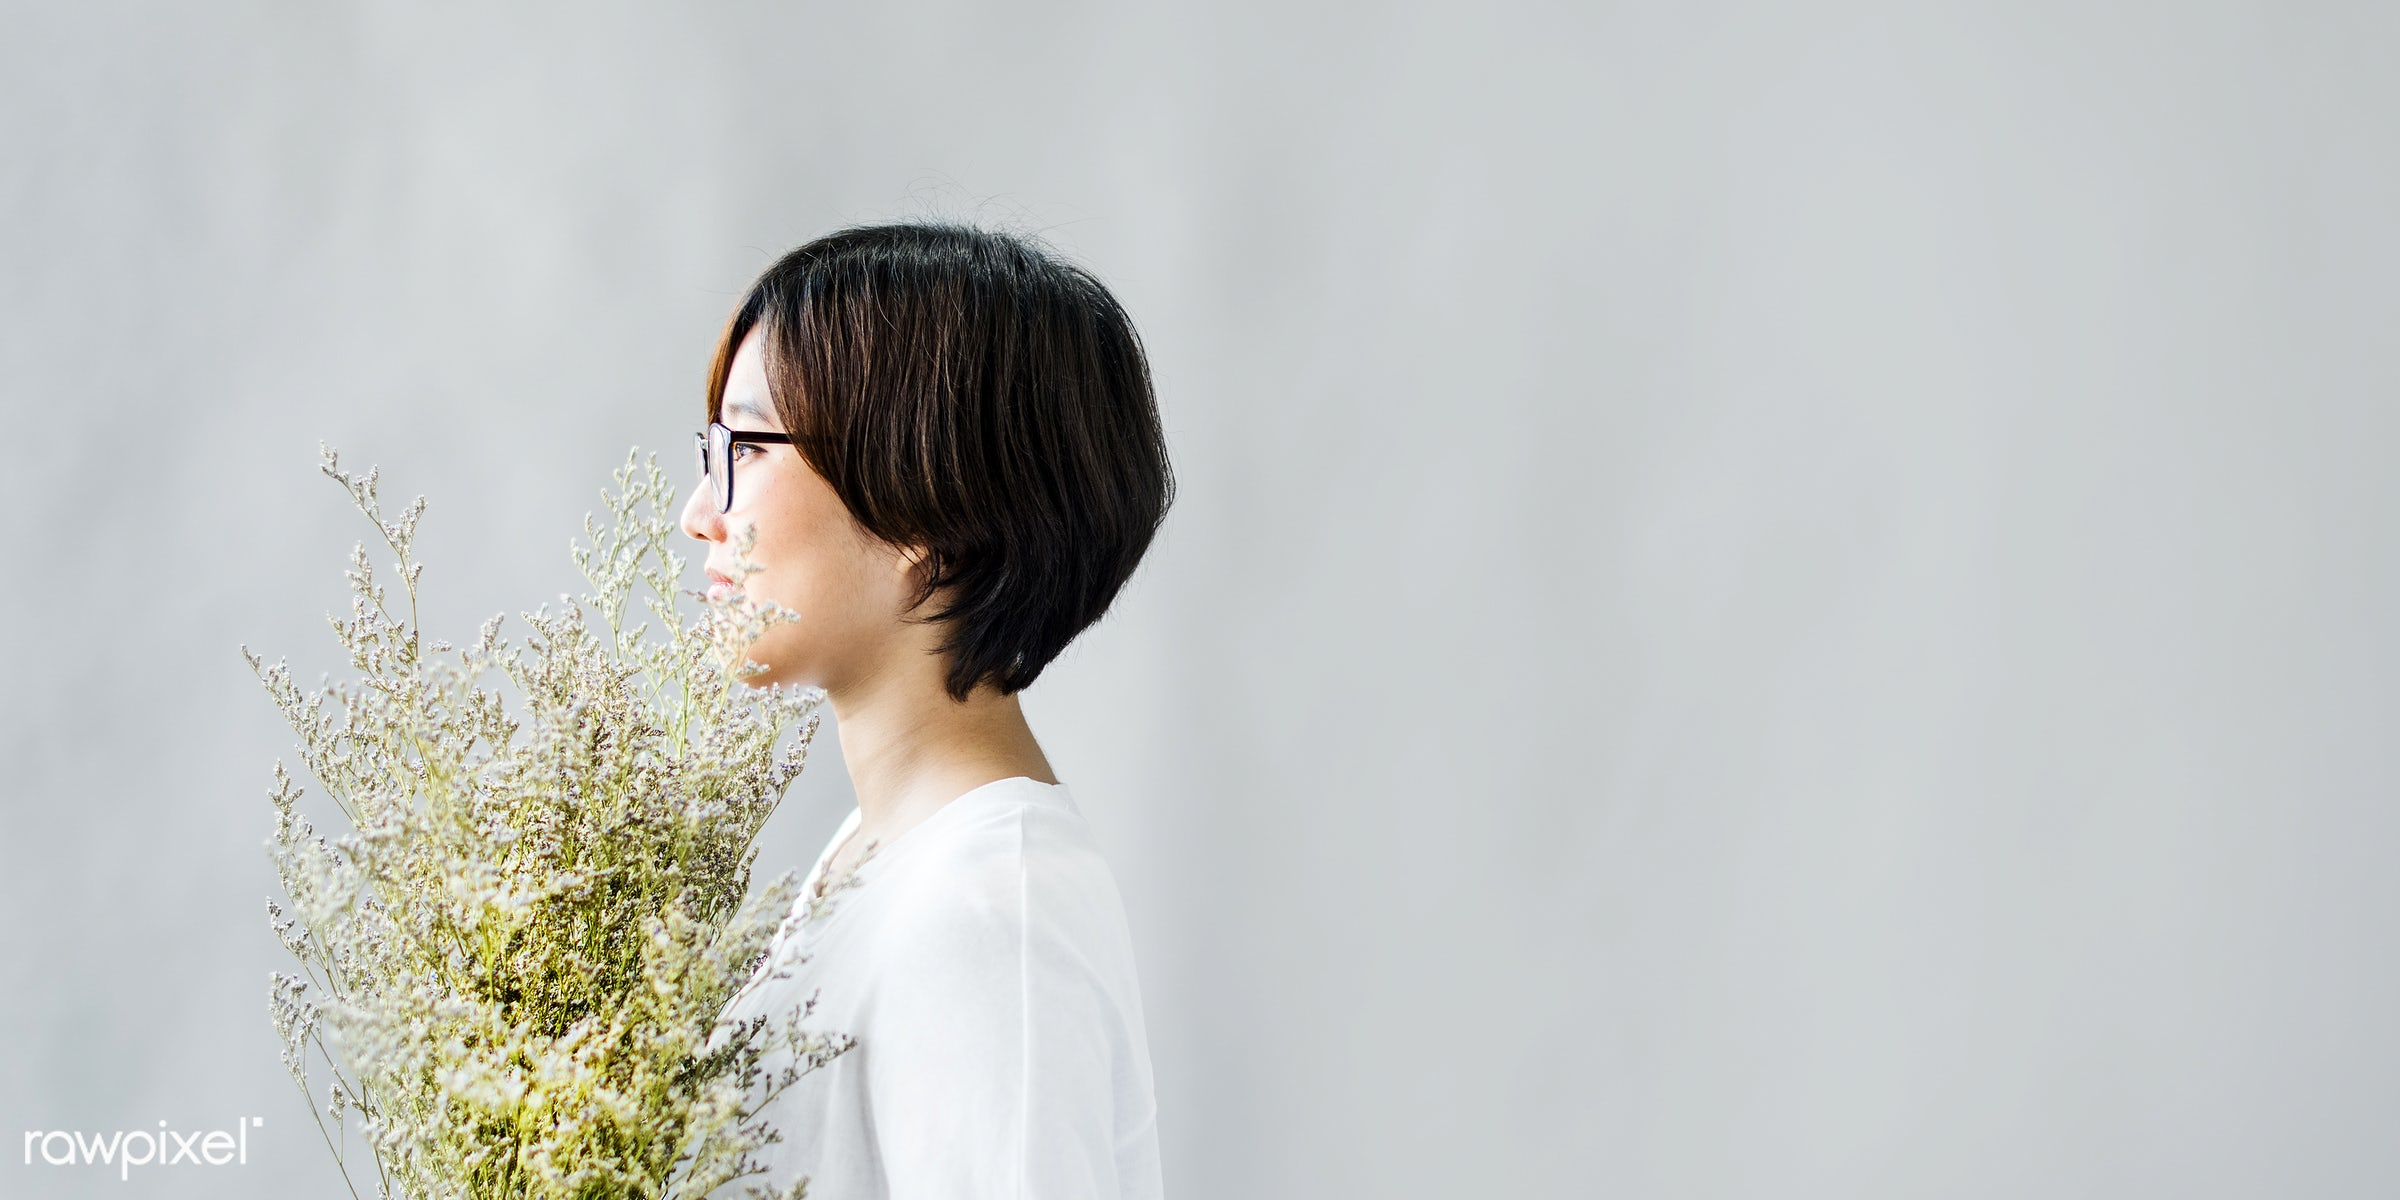 alone, asian ethnicity, bouquet, calm, casual, cheerful, chilling, concrete, dating, enjoyment, femininity, flower, gift,...